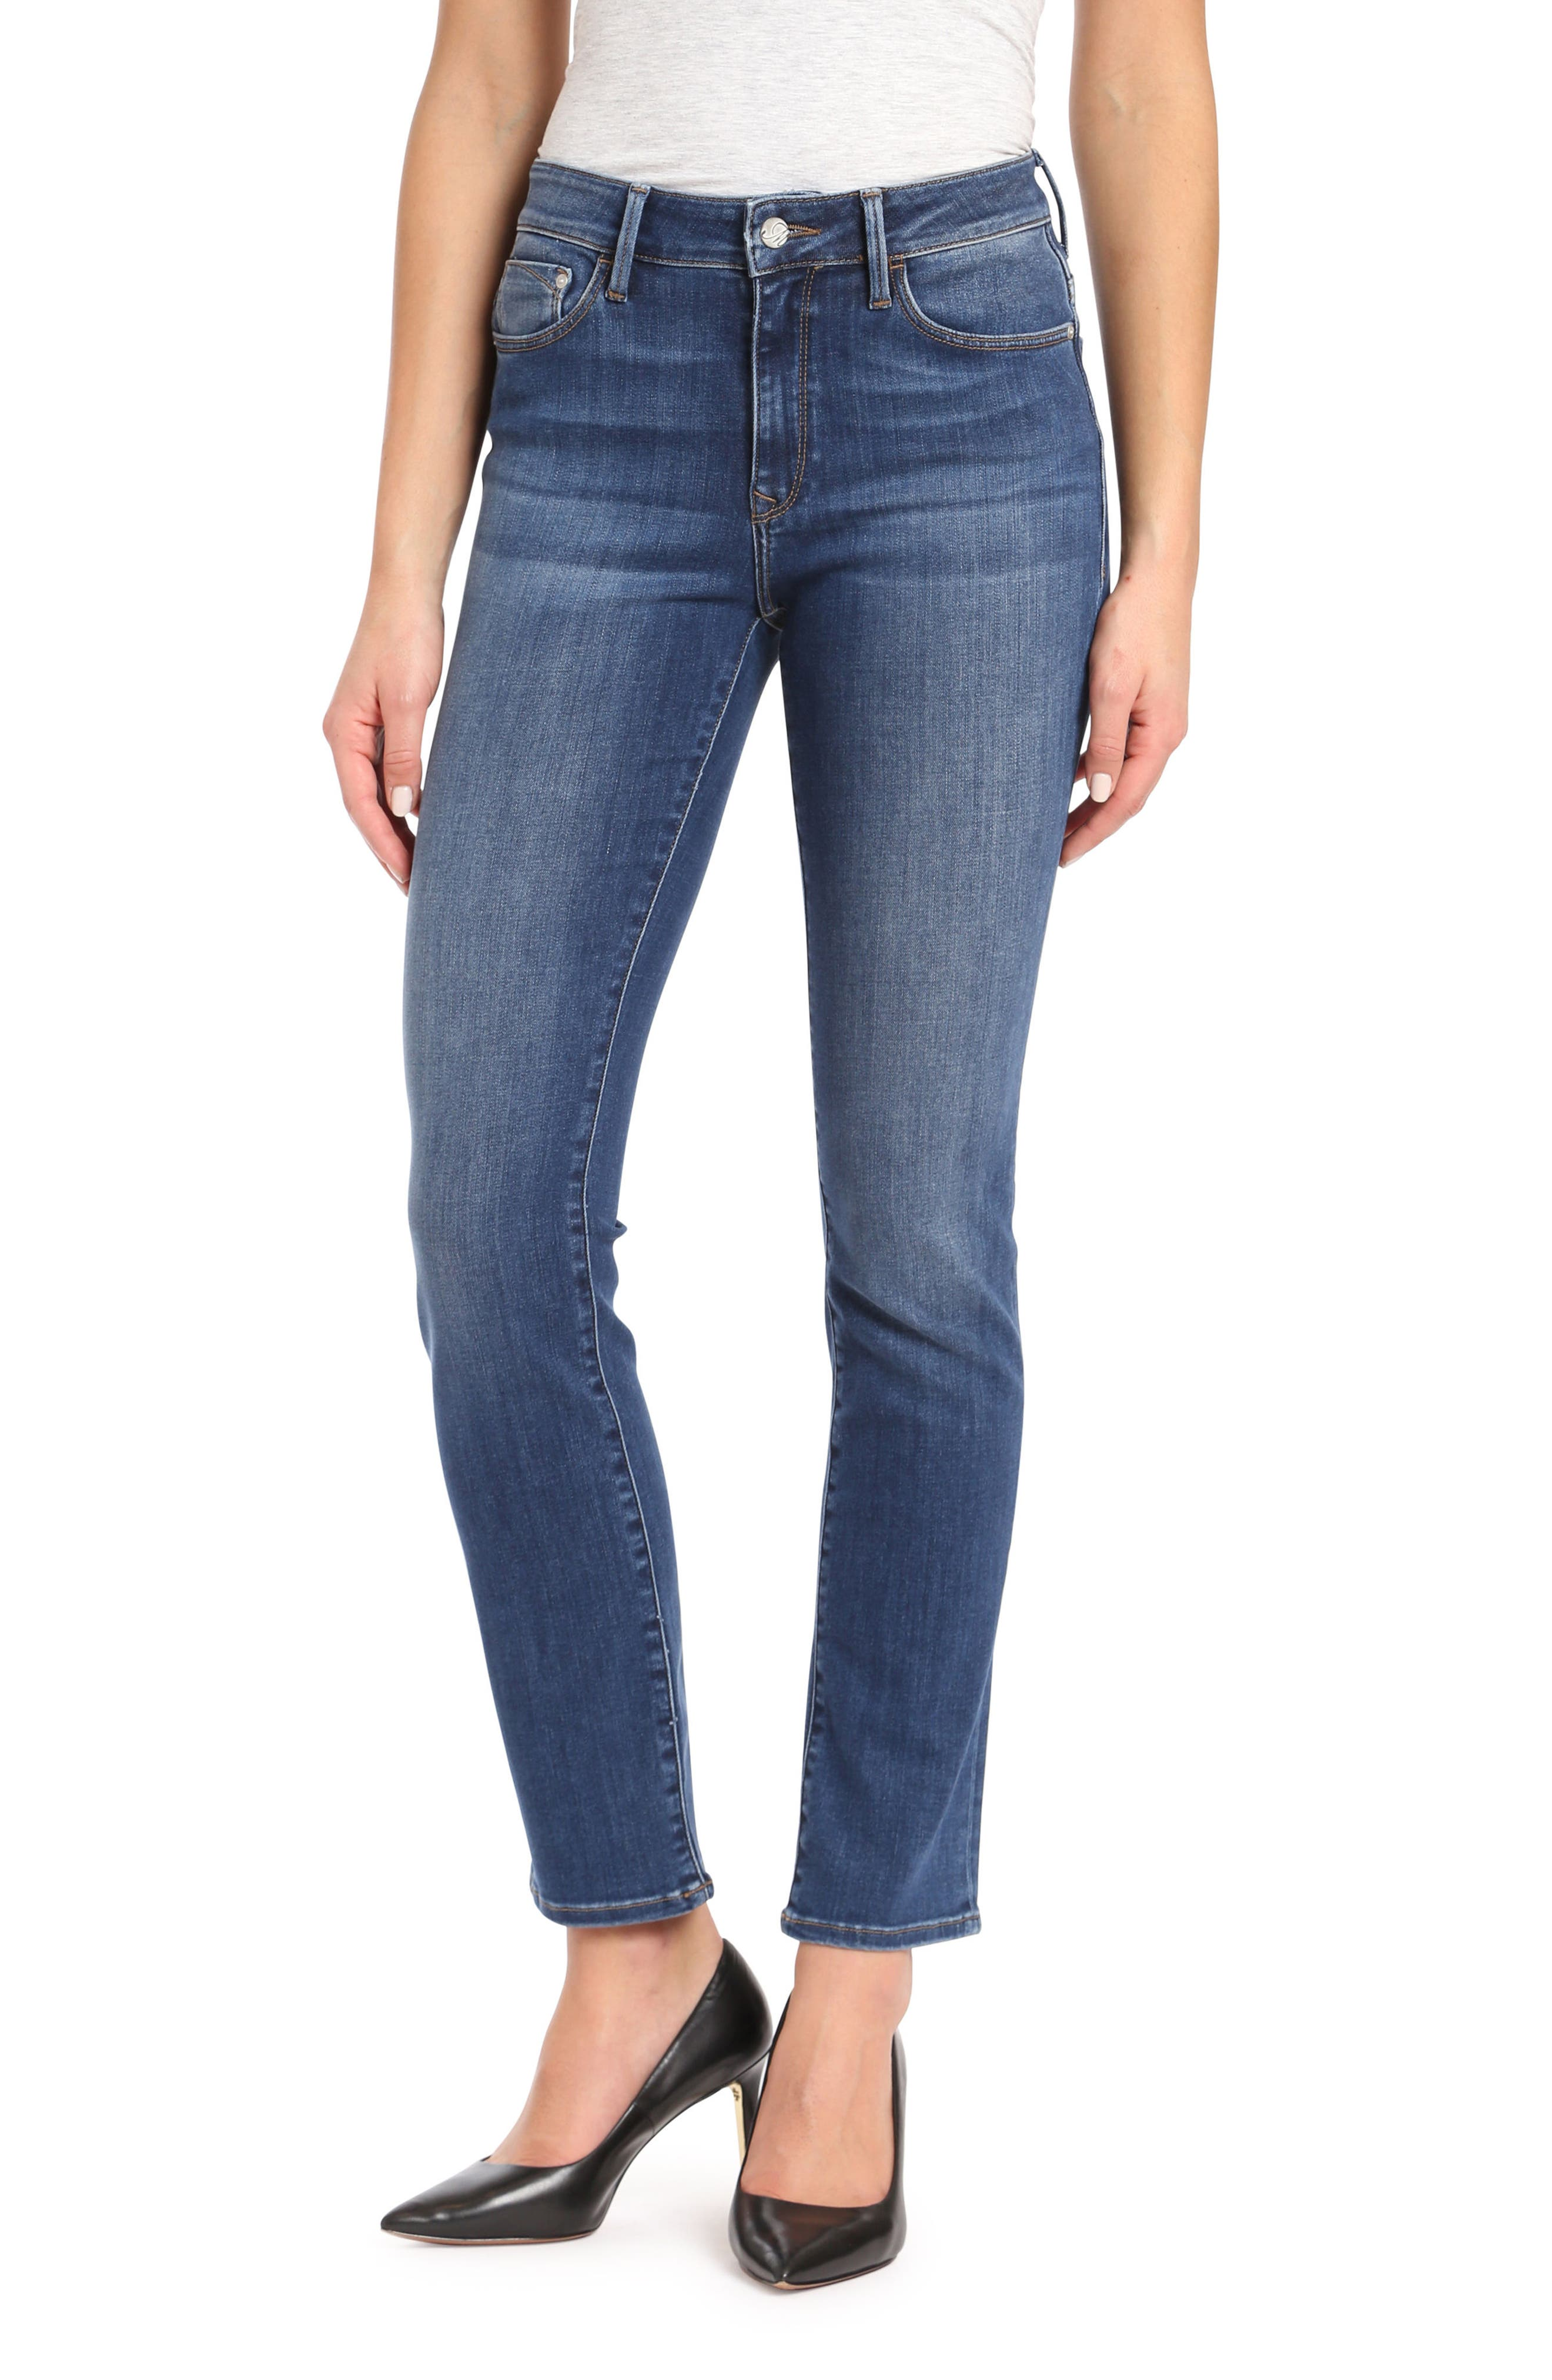 Kendra Straight Leg Jeans,                         Main,                         color, INDIGO SUPER SOFT